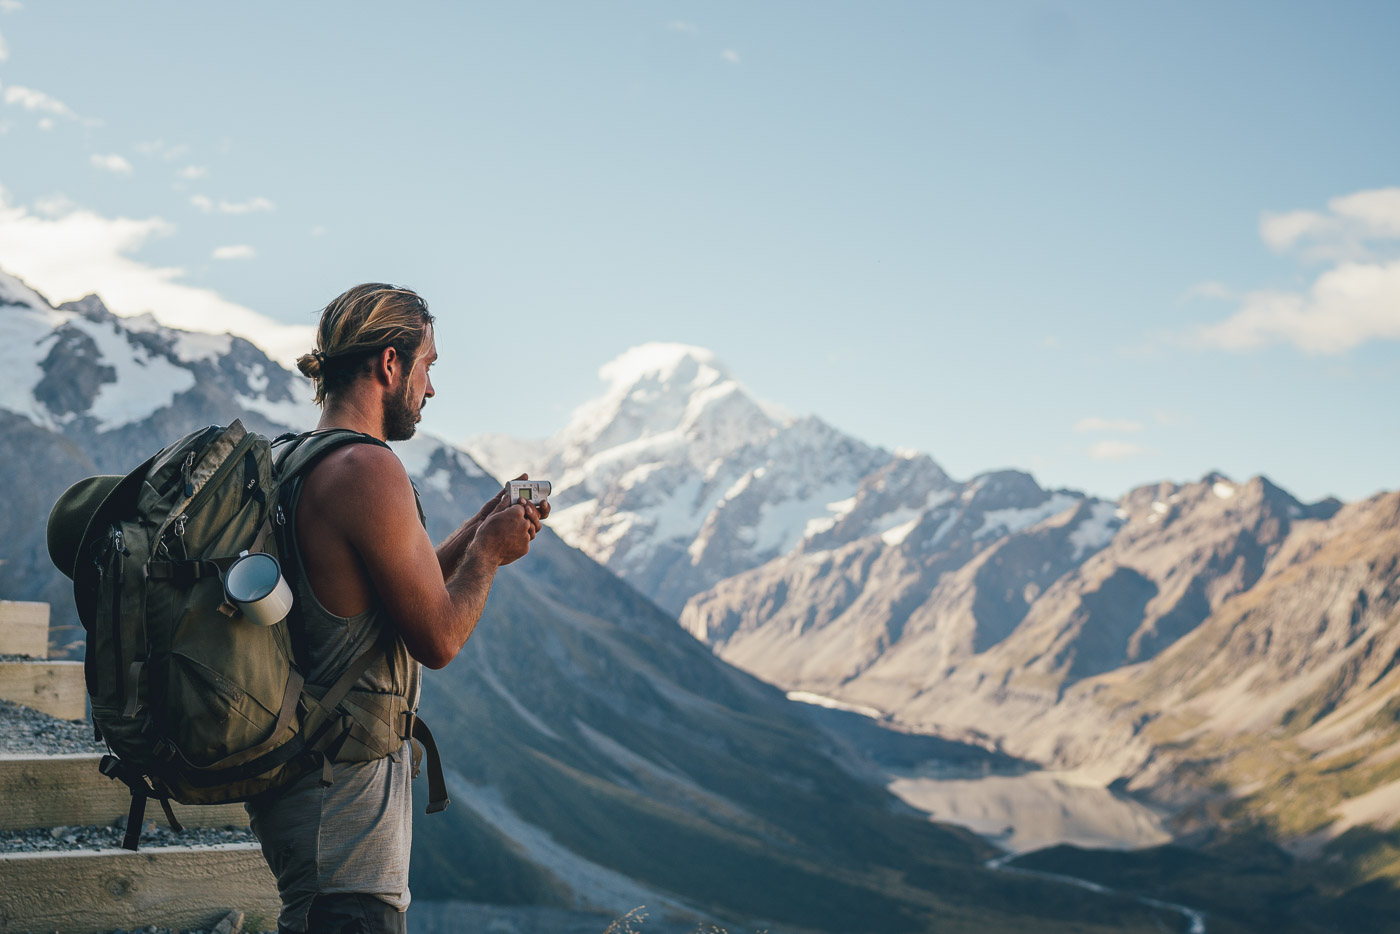 Photographer Stefan Haworth Filming on the Sony Action cam at Mount Cook, New Zealand